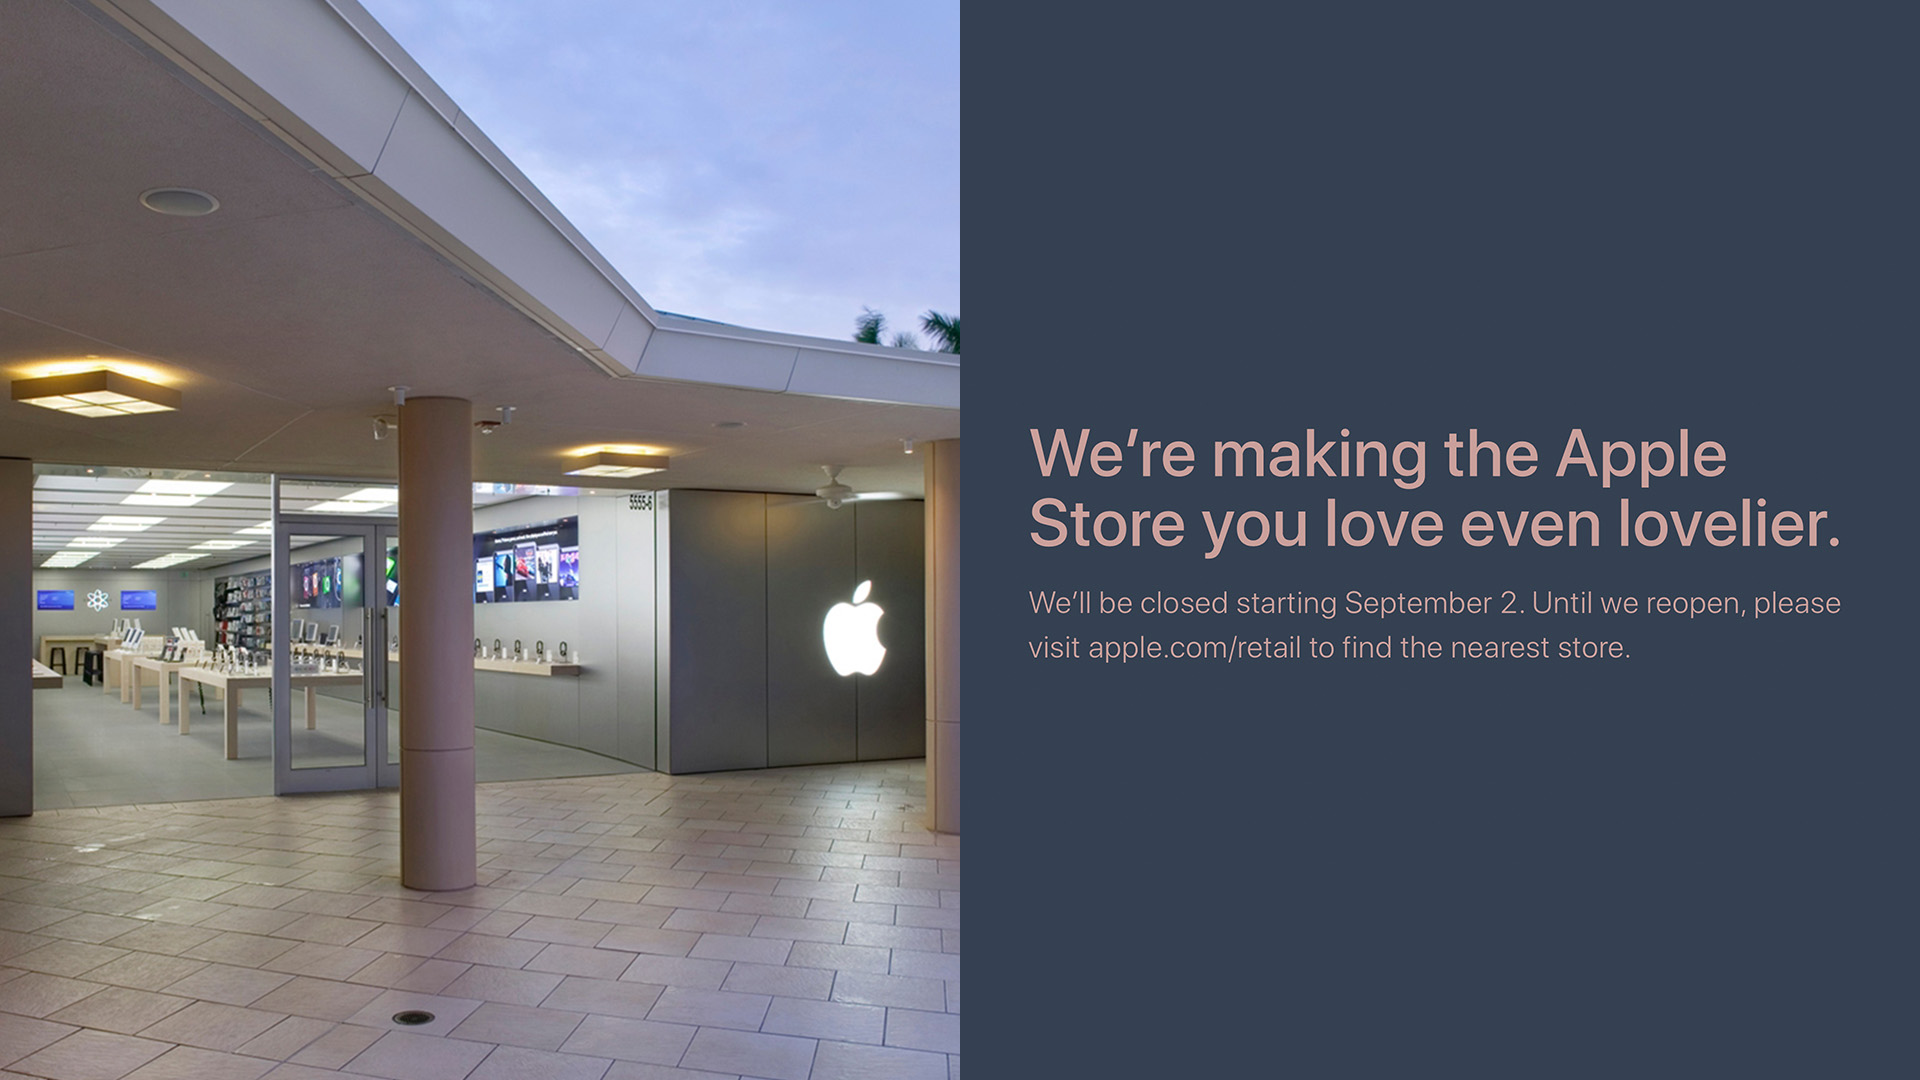 Renovations Set To Begin September 2nd At Apples Retail Store In